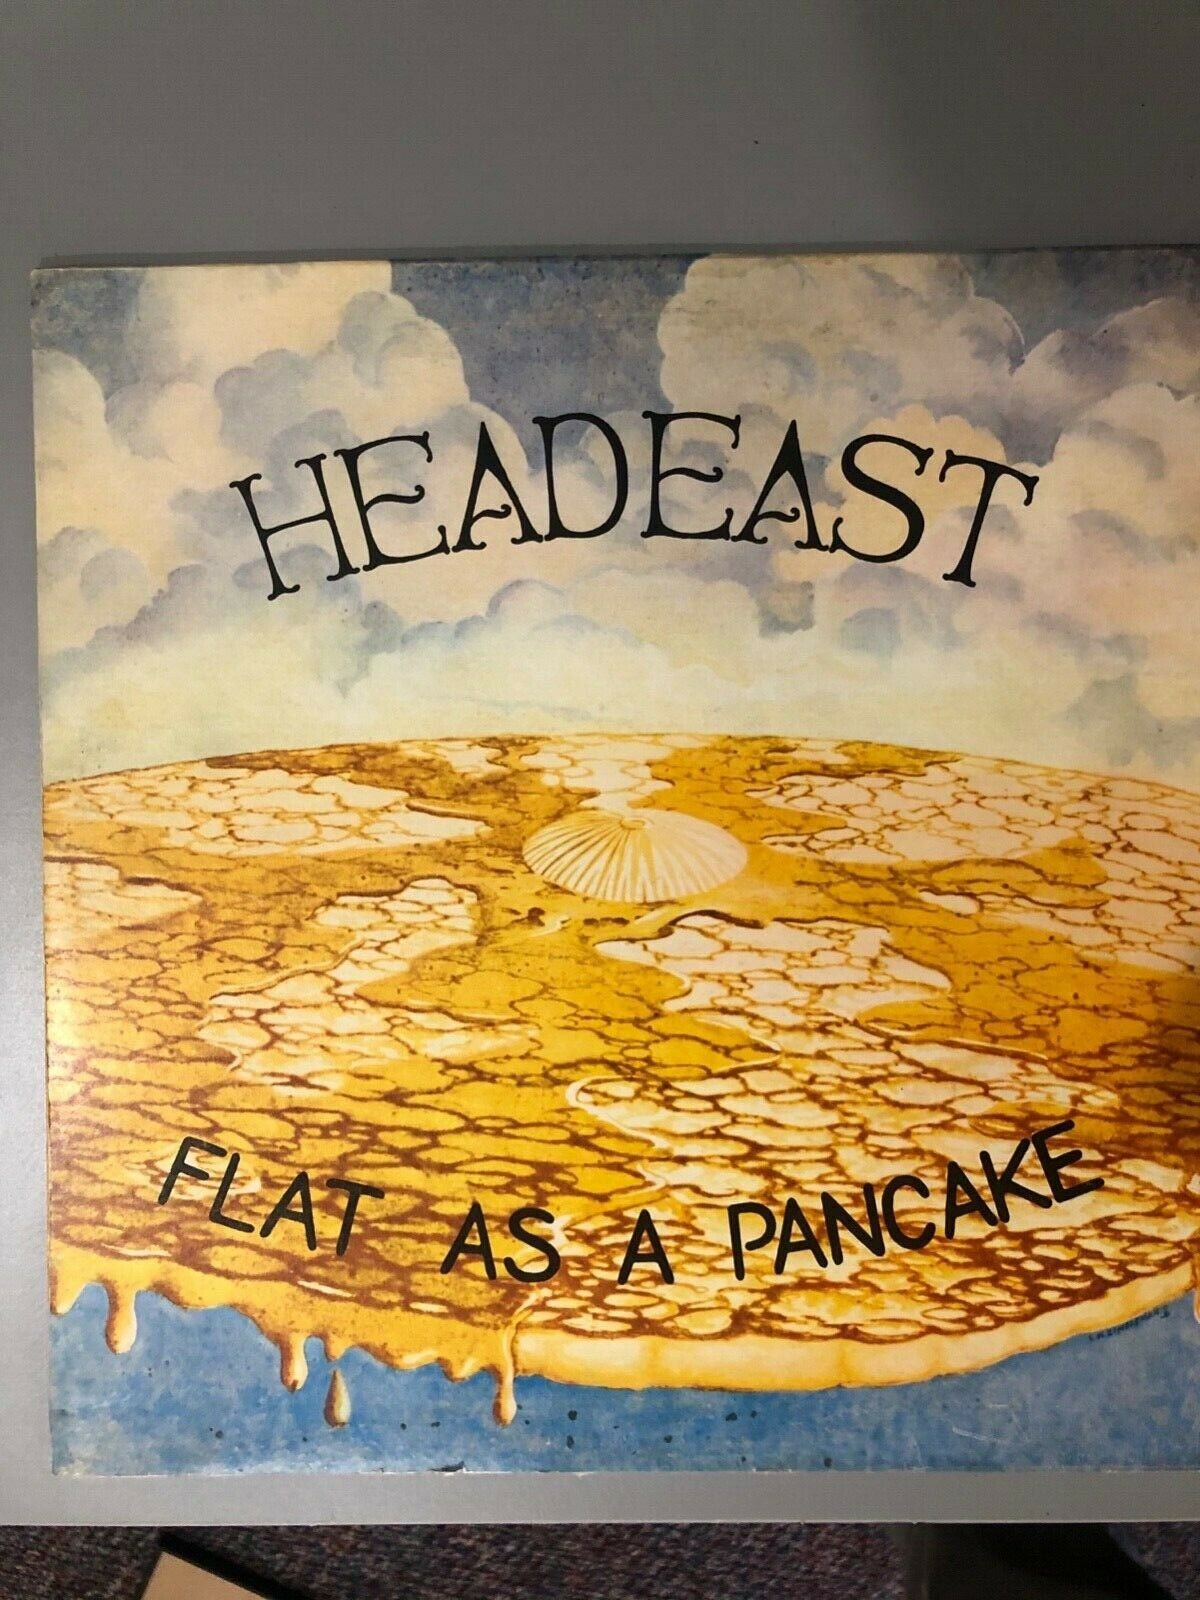 Head East first album Flat as a Pancake, produced by Pyramid Records 1974